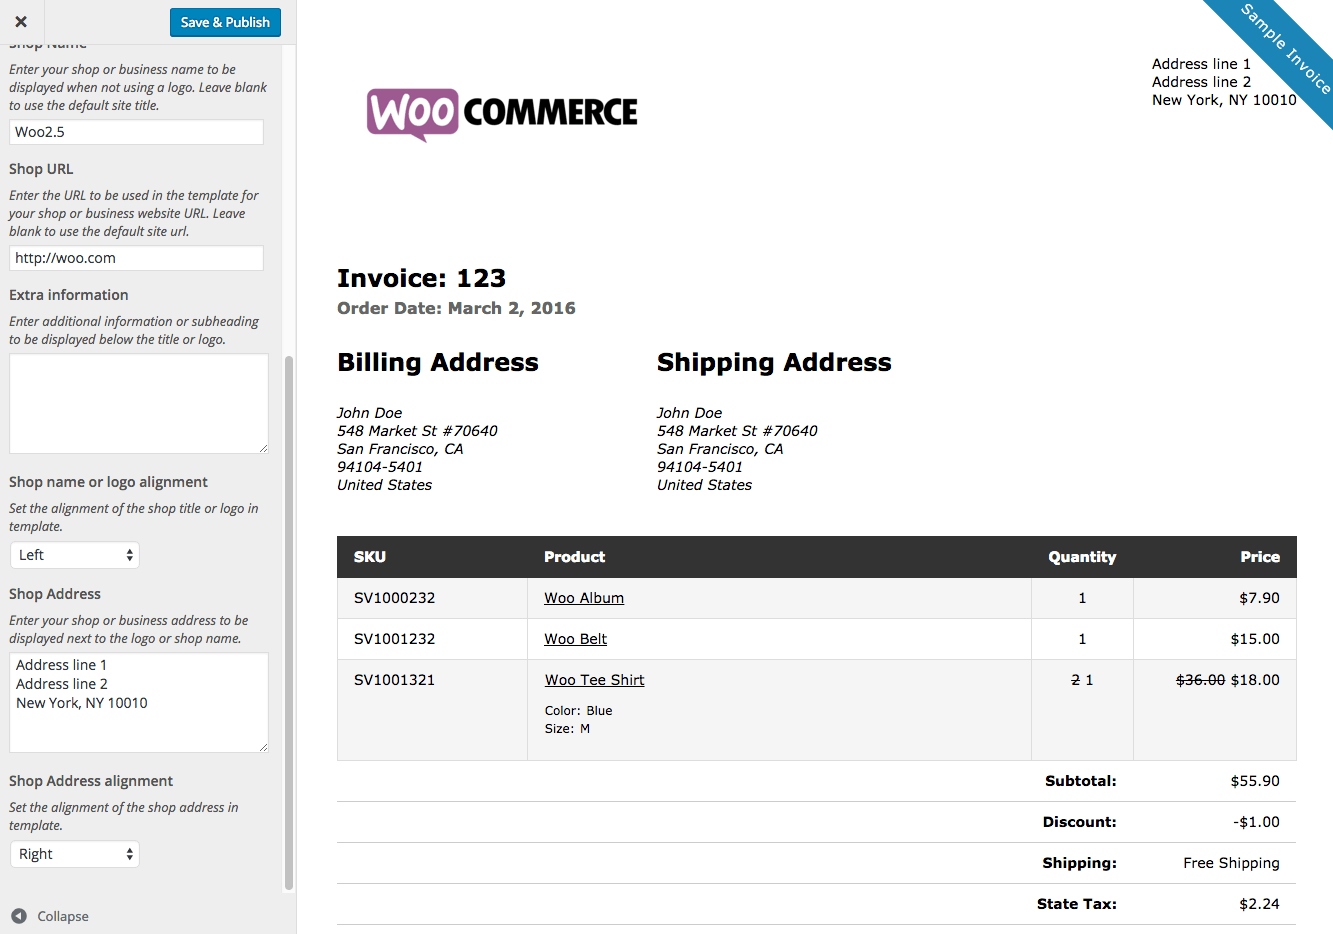 Hius  Pleasing Print Invoices Amp Packing Lists  Woocommerce With Likable Woocommerce Print Invoices  Packing Lists Customizer With Attractive Iphone App For Receipts Also Coupon Receipt Organizer In Addition Can I Return An Item Without A Receipt And Medical Bill Receipt As Well As Cod Receipts Additionally Cash Received Receipt From Woocommercecom With Hius  Likable Print Invoices Amp Packing Lists  Woocommerce With Attractive Woocommerce Print Invoices  Packing Lists Customizer And Pleasing Iphone App For Receipts Also Coupon Receipt Organizer In Addition Can I Return An Item Without A Receipt From Woocommercecom